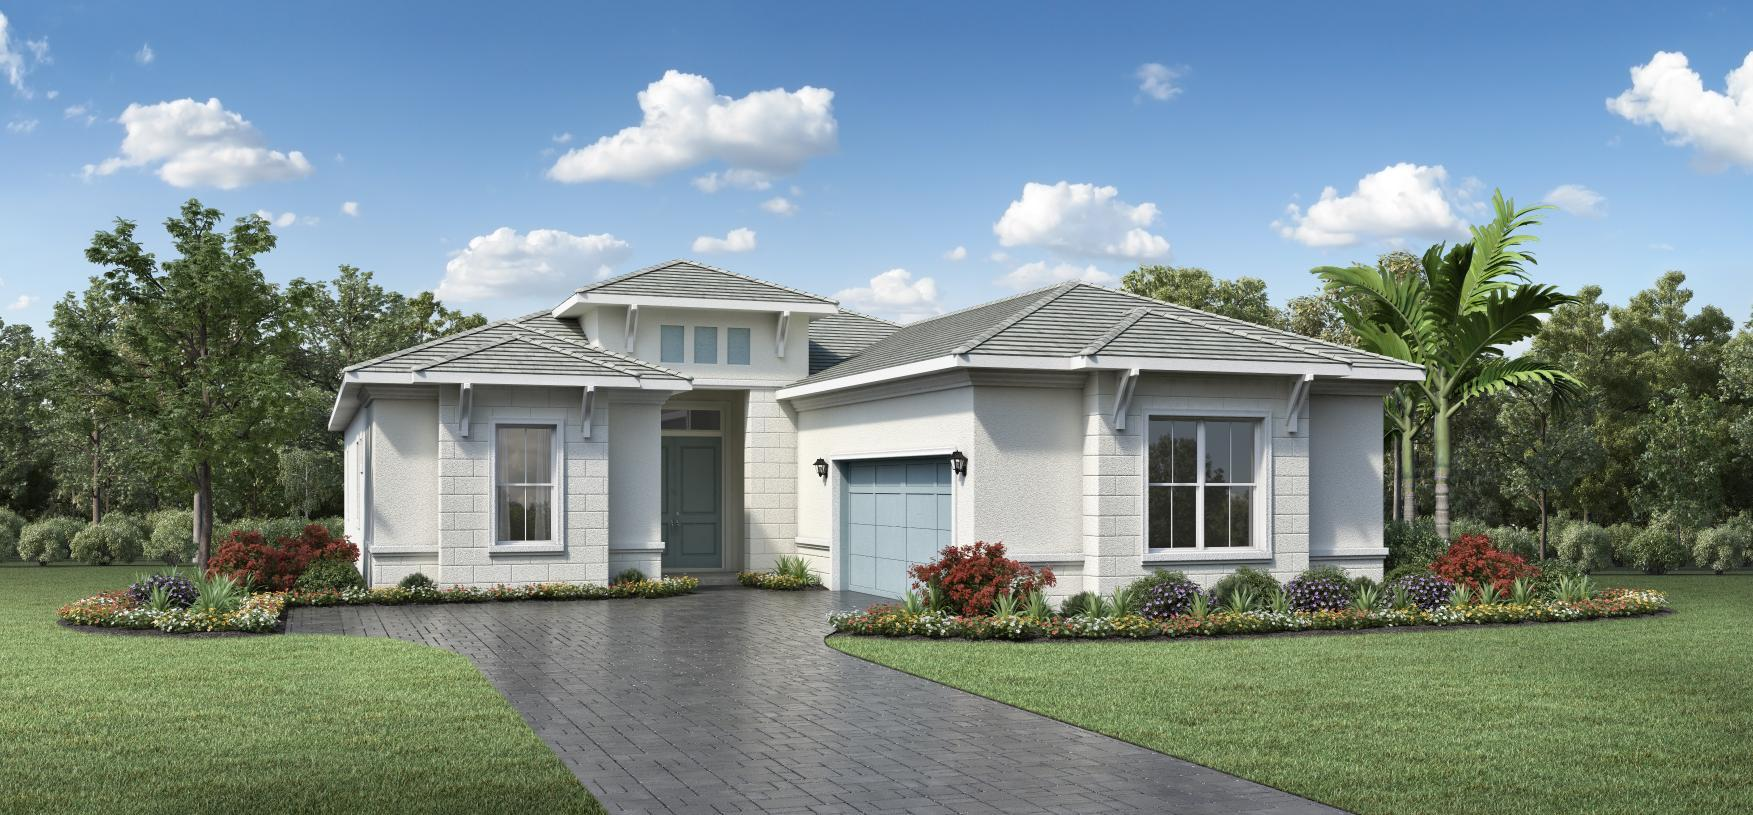 Elevation Image:Boca Raton